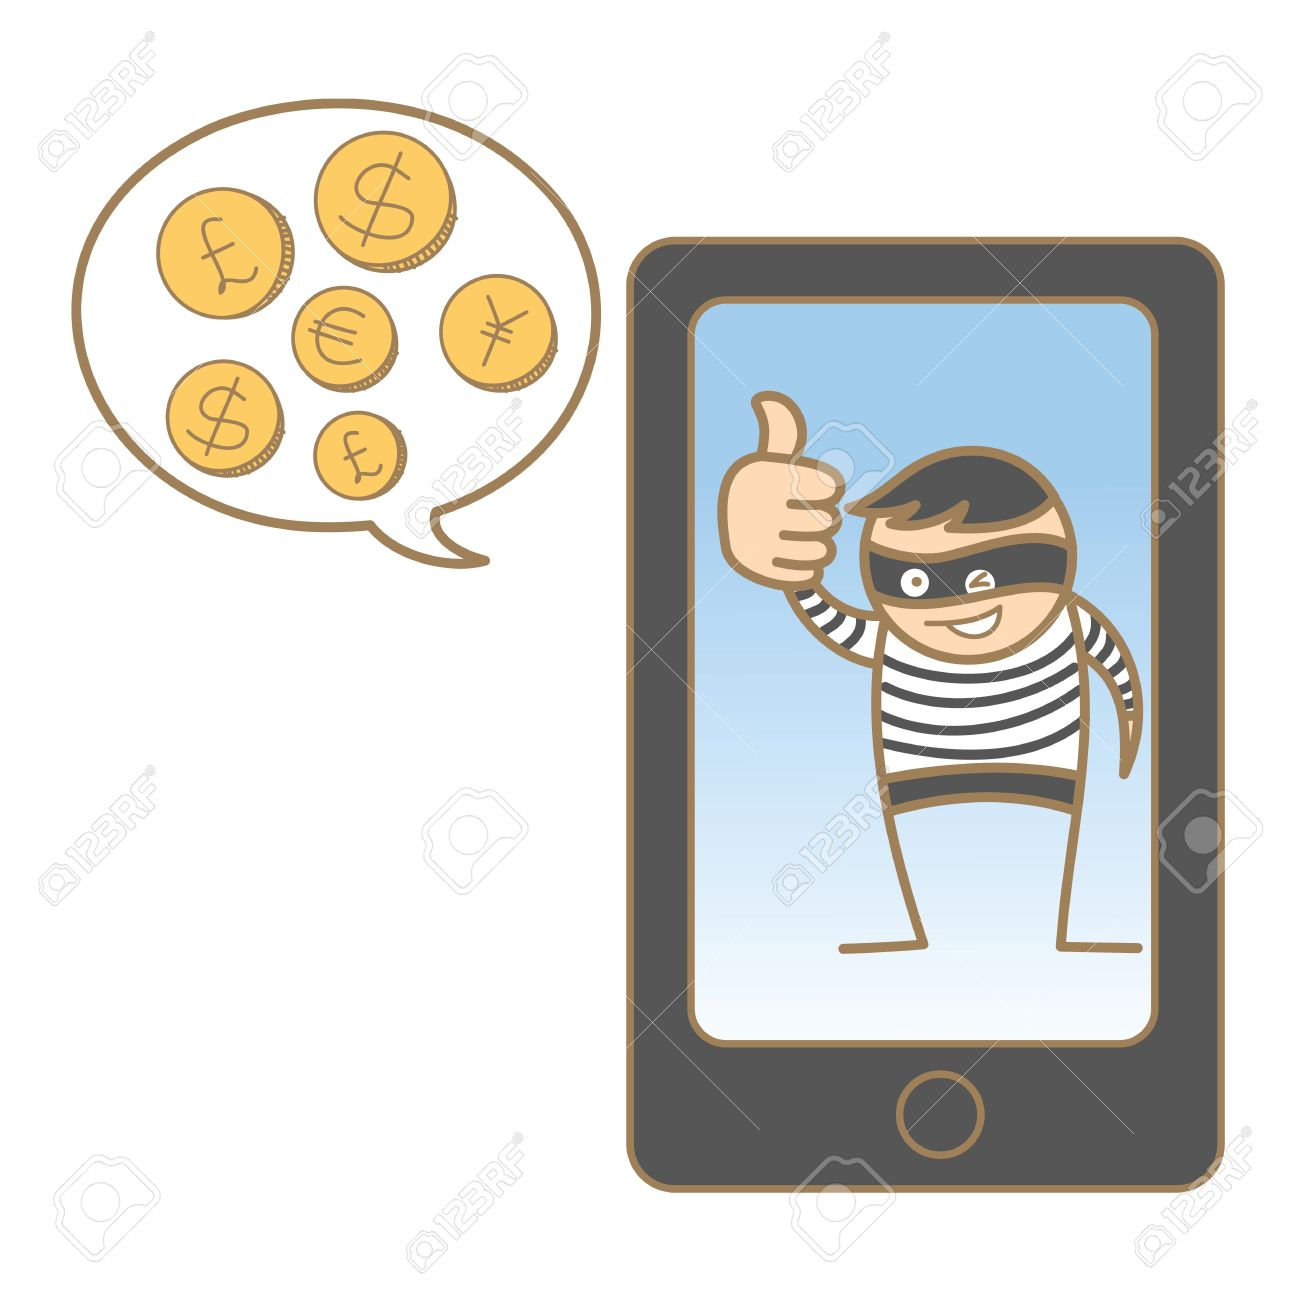 cartoon character of burglar hacking mobile Stock Vector - 17414589